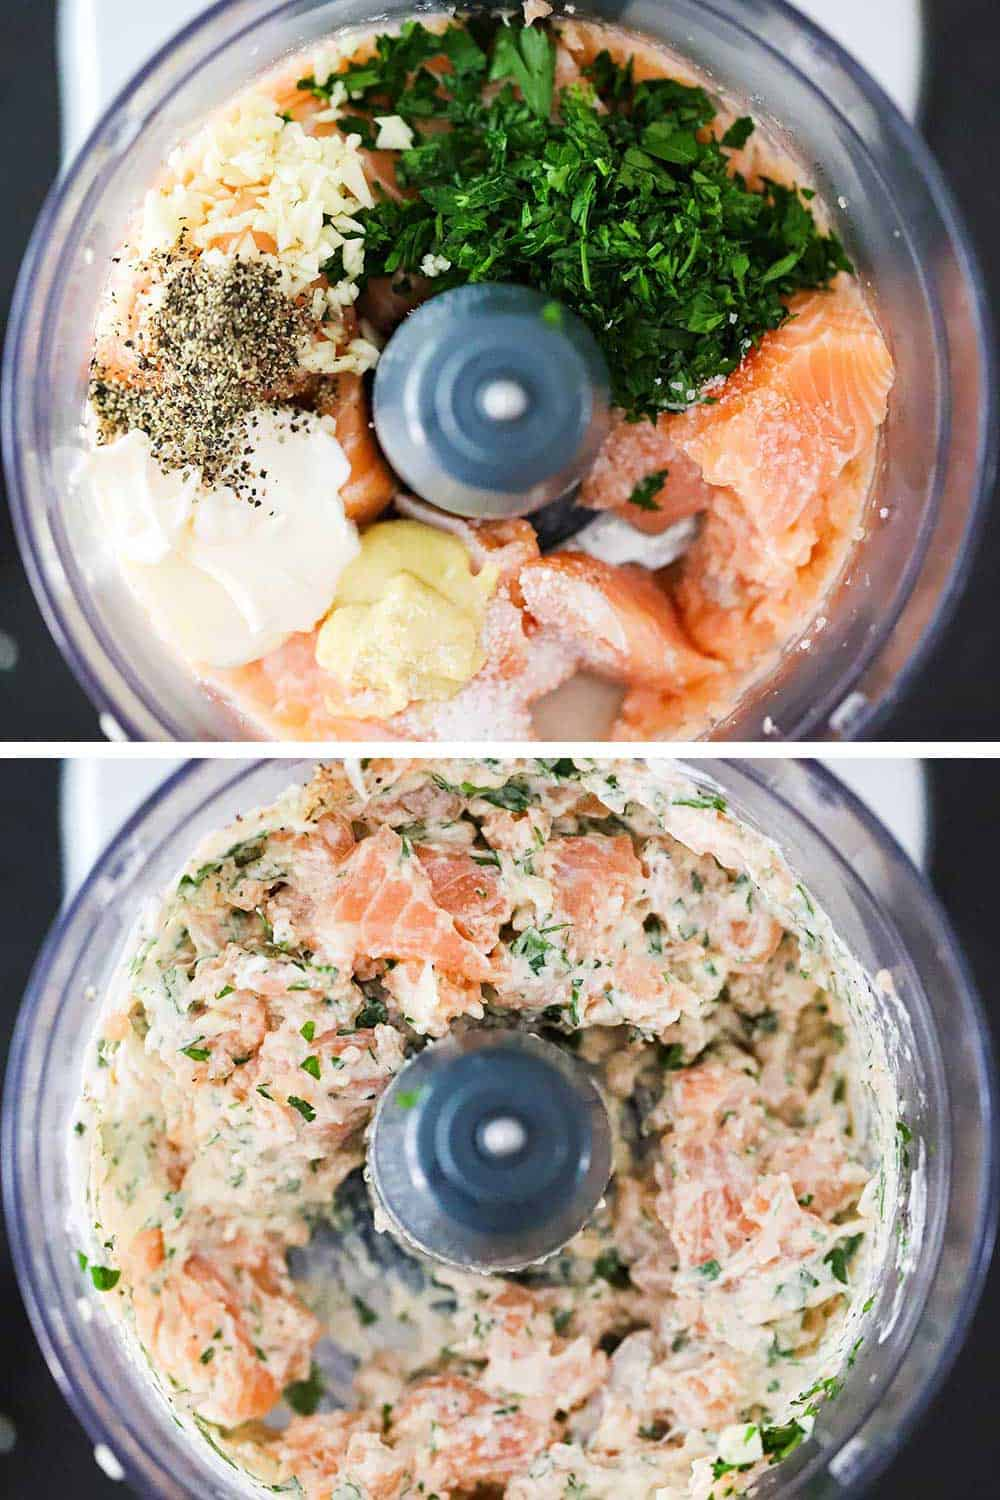 A food processor filled with chunks of salmon, herbs, mayonnaise, salt, and pepper and then again after the mixture has been processed briefly.